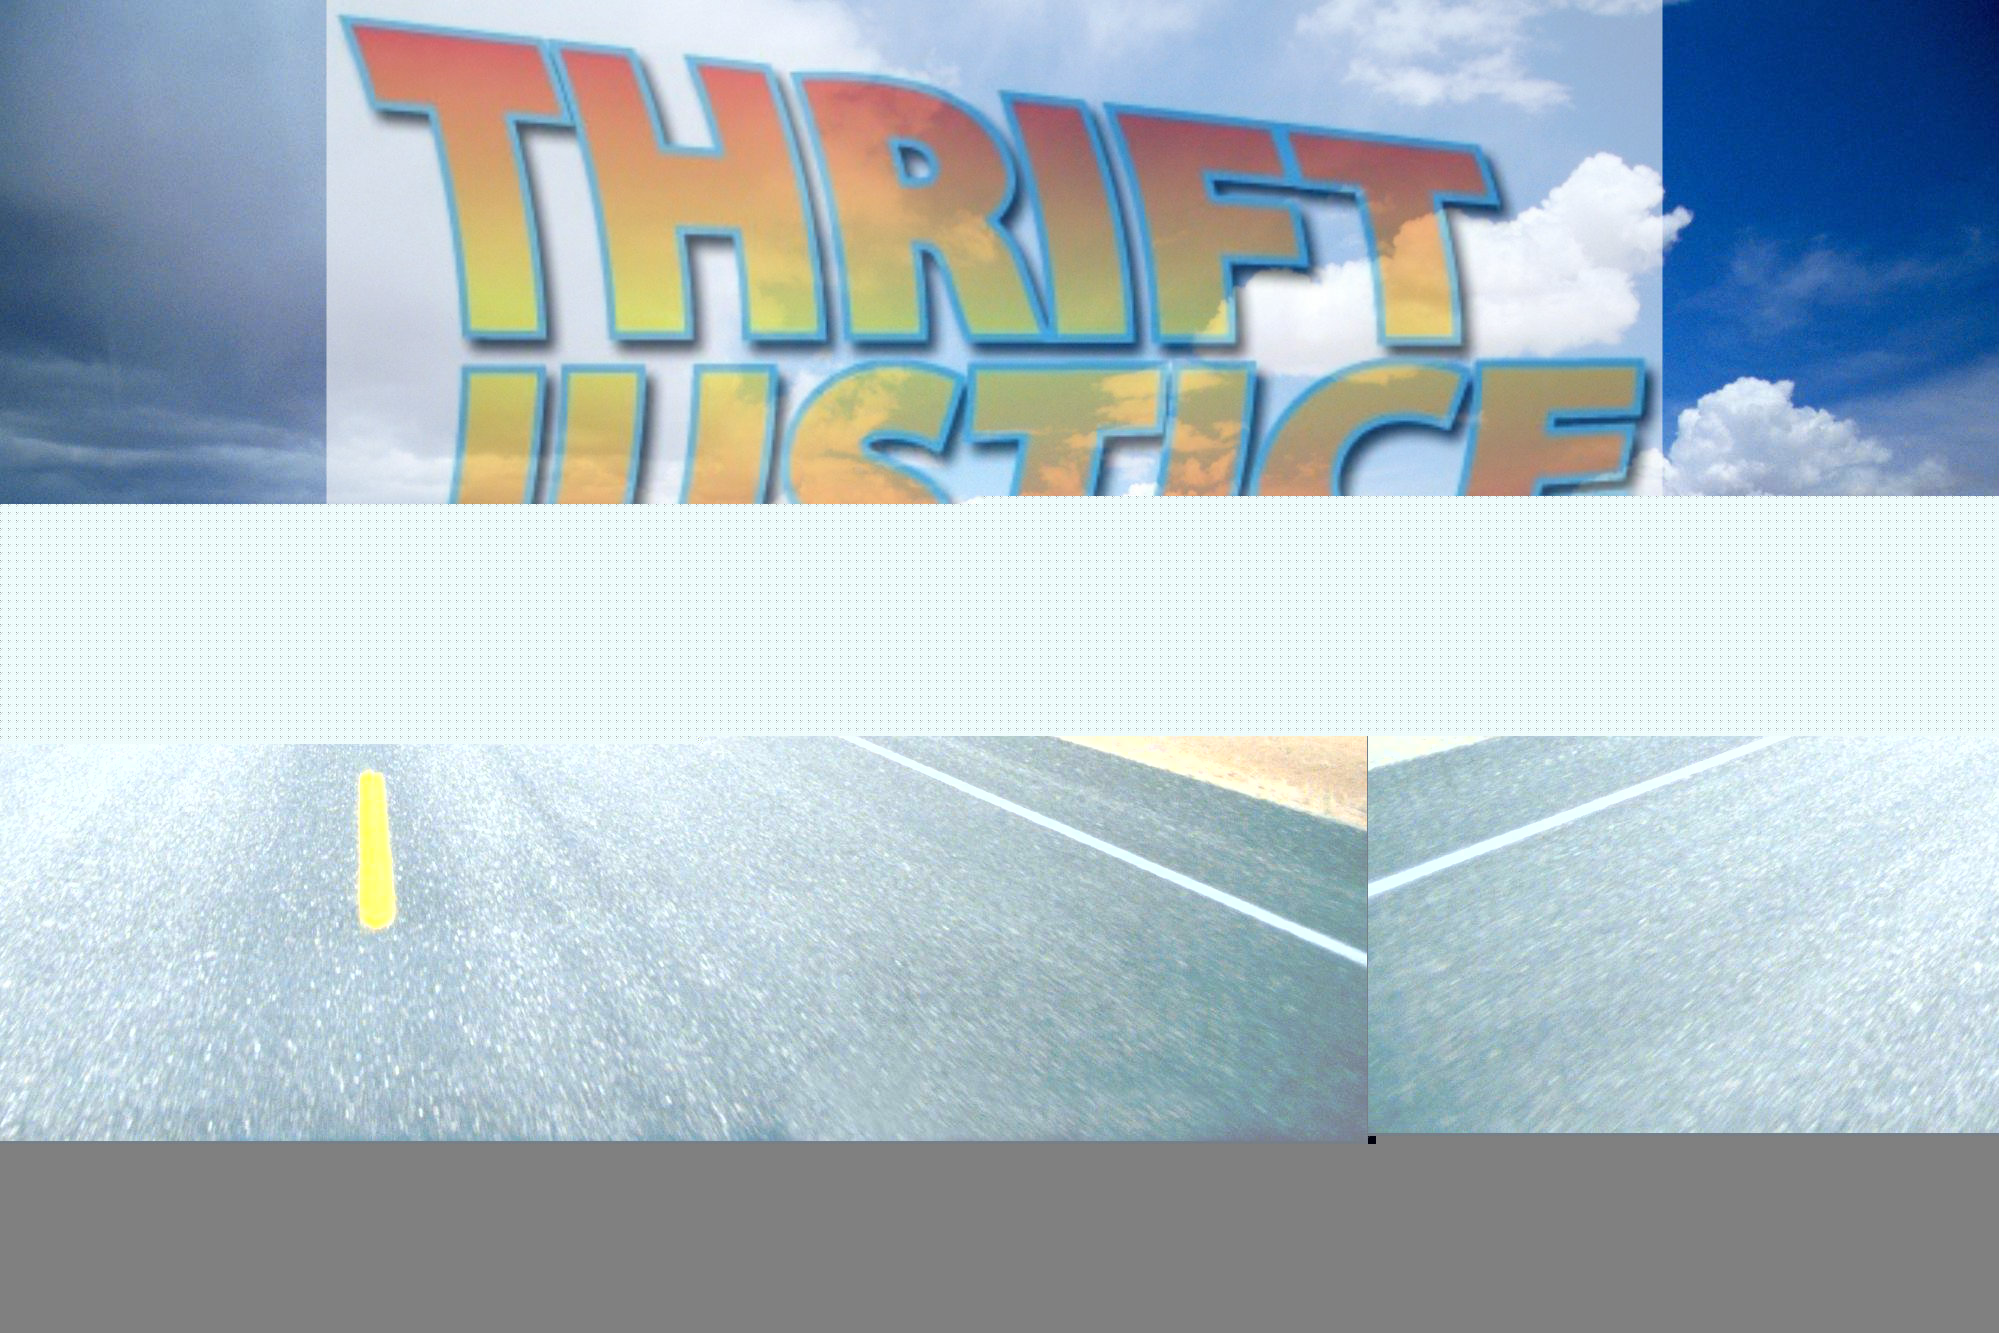 Thrift Justice Road Trip – Hershey, PA